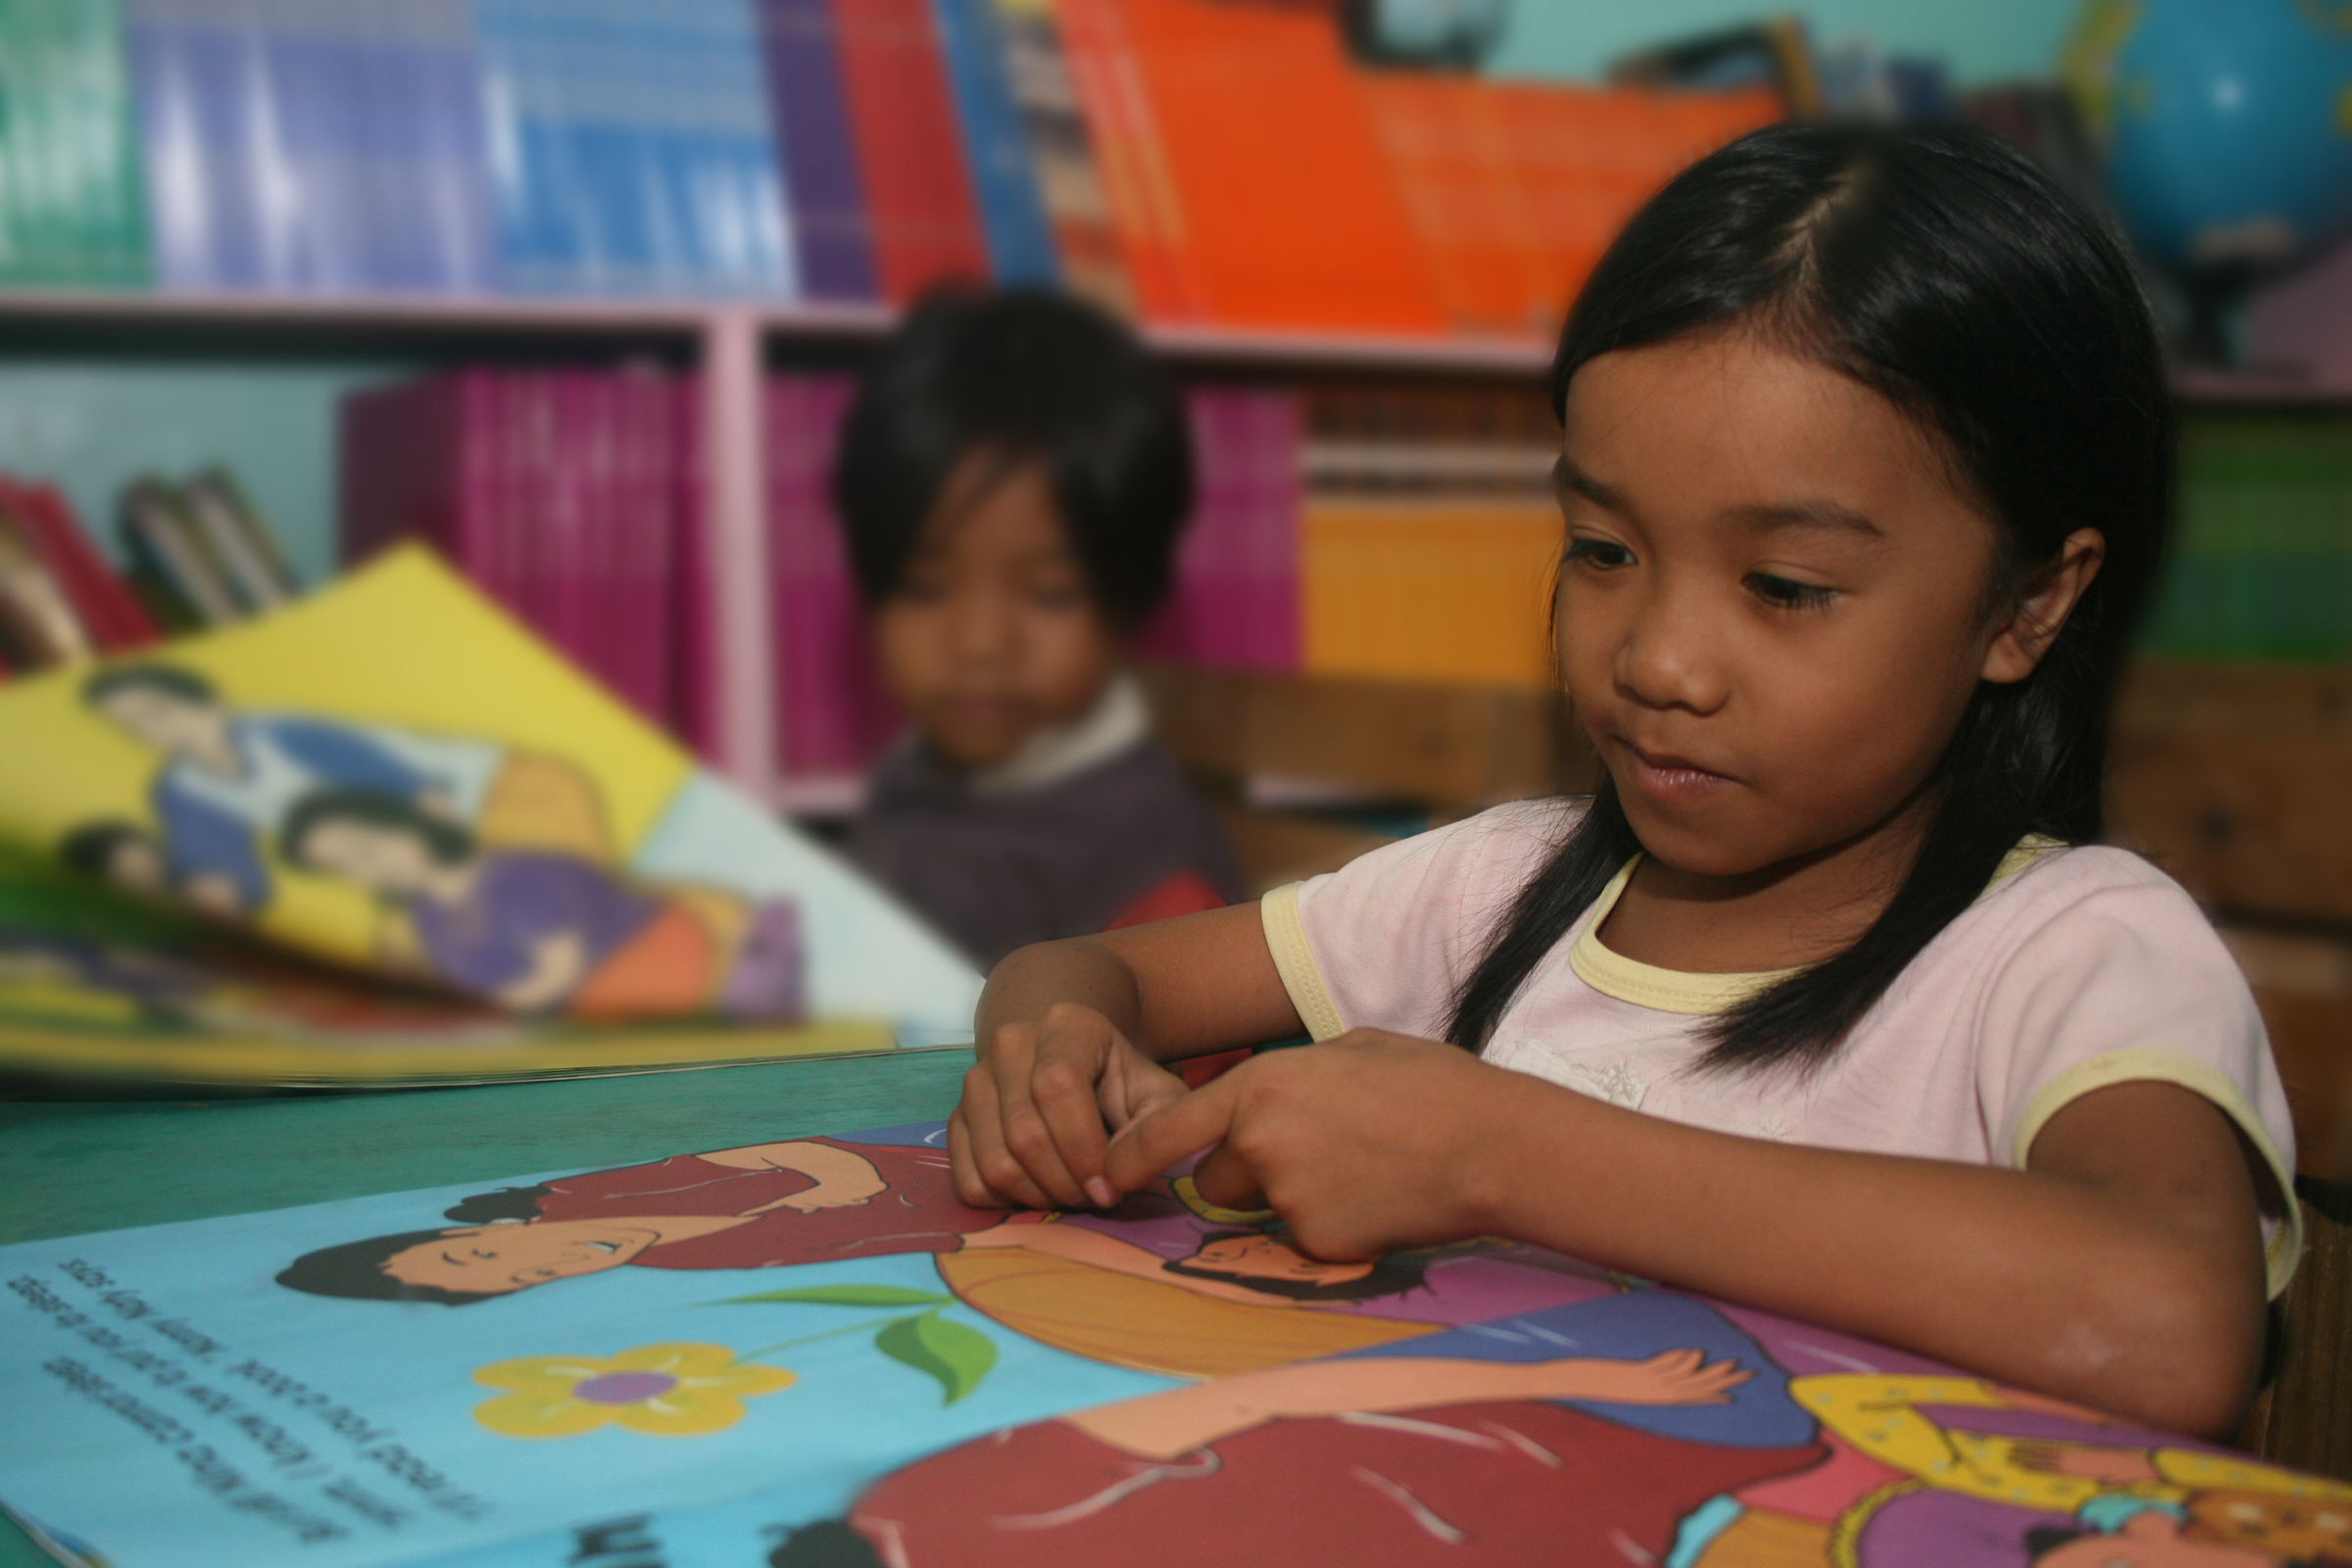 philippines studies about the course preferences student get the author Comparing student learning styles in most of the studies focus on the knowledge of student learning preferences can provide a bridge to course success.